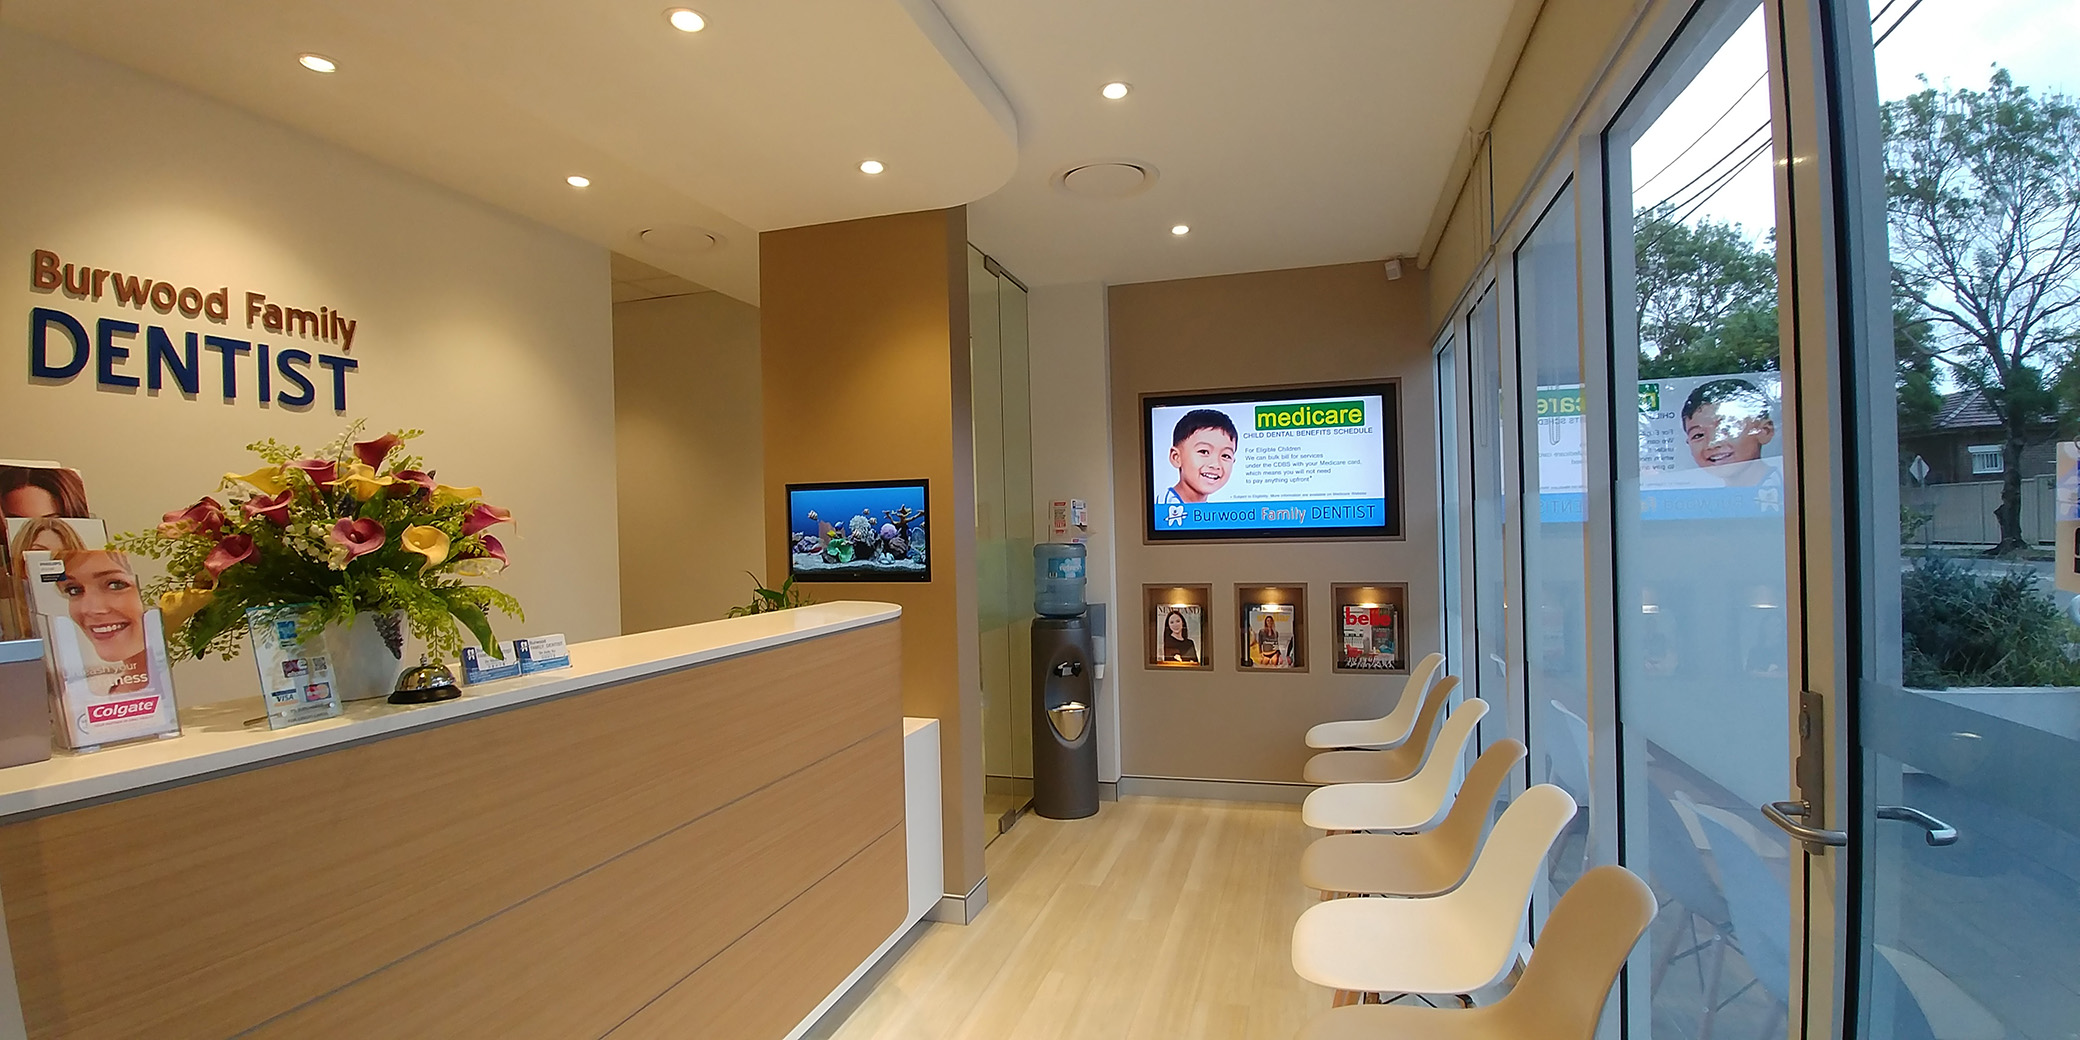 牙科診所 burwood dental